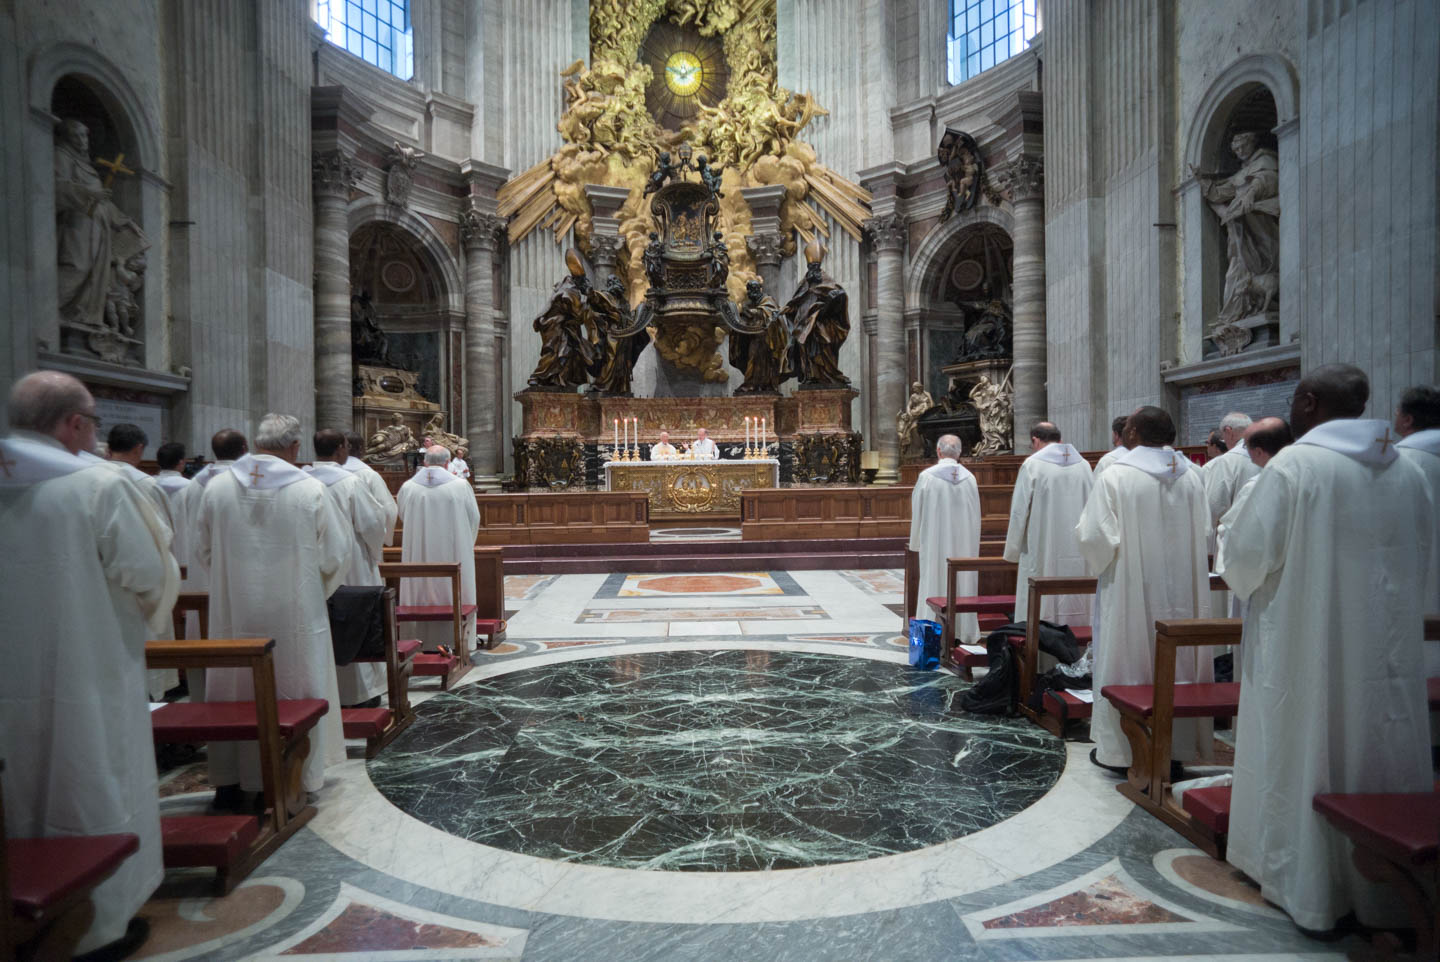 GC36 Mass at the Vatican in the chapel of the Cathedra or chair. Celebrant is Bienvenido F. Nebres, SJ, of the Philippines, accompanited by Fr. James Grummer, SJ.